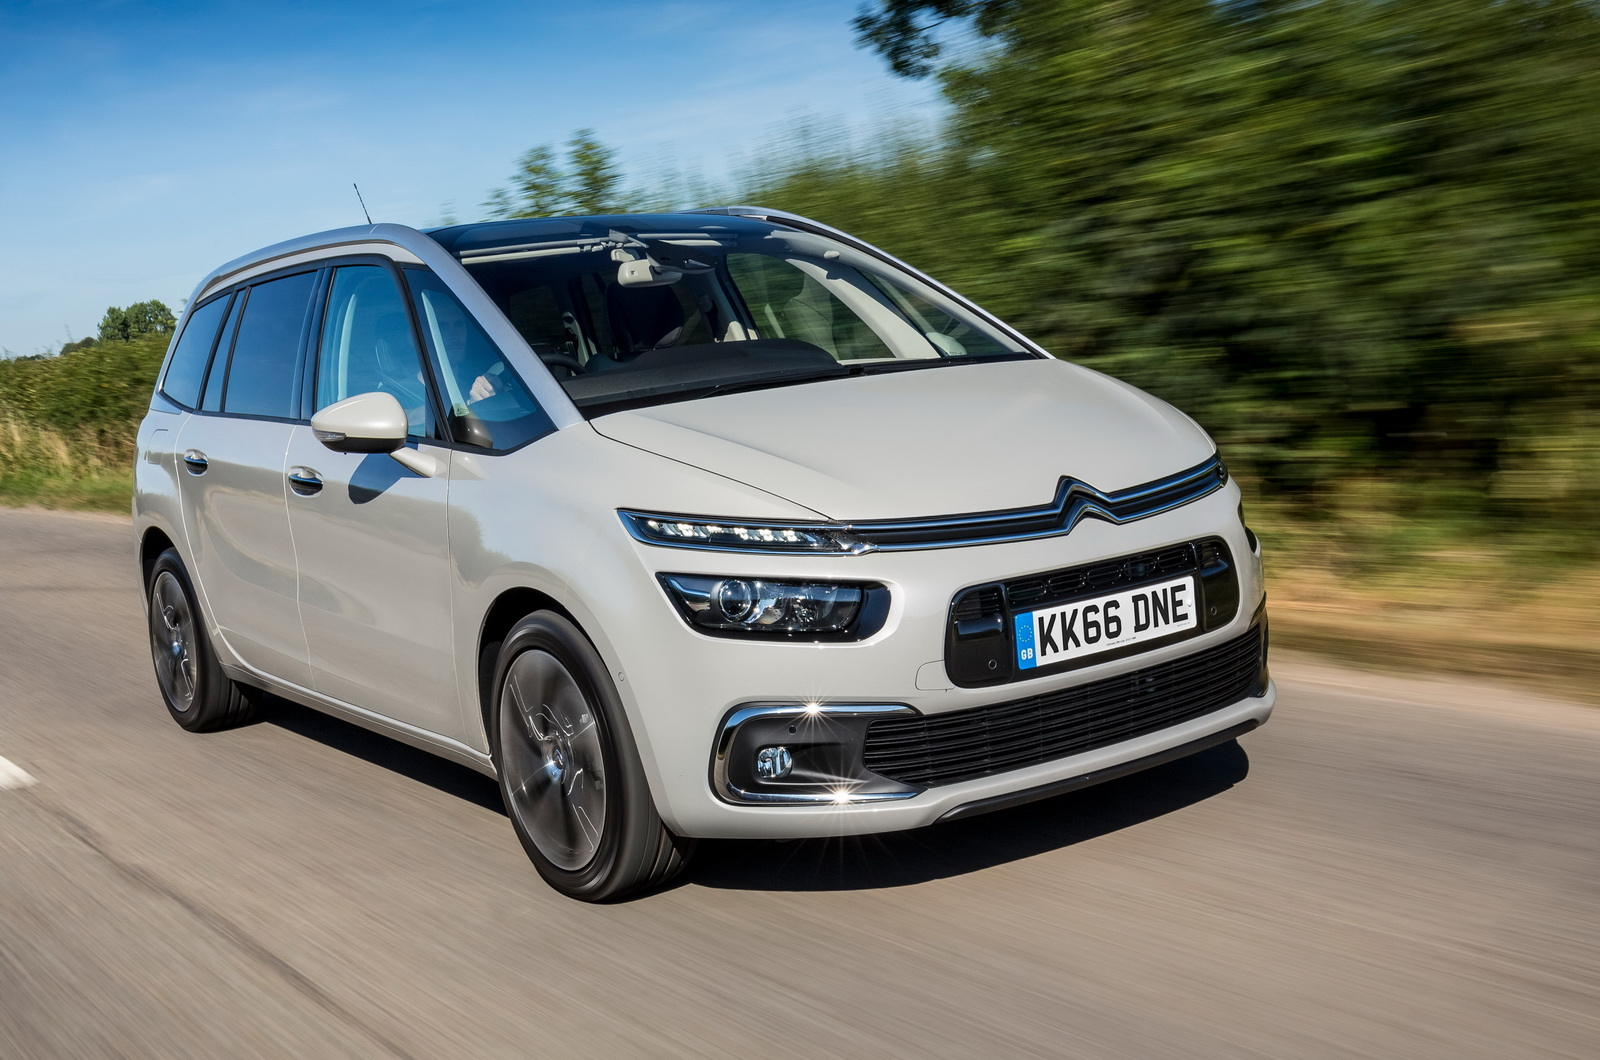 citroen s updated c4 picasso grand c4 picasso launched in the uk 44 pics carscoops. Black Bedroom Furniture Sets. Home Design Ideas